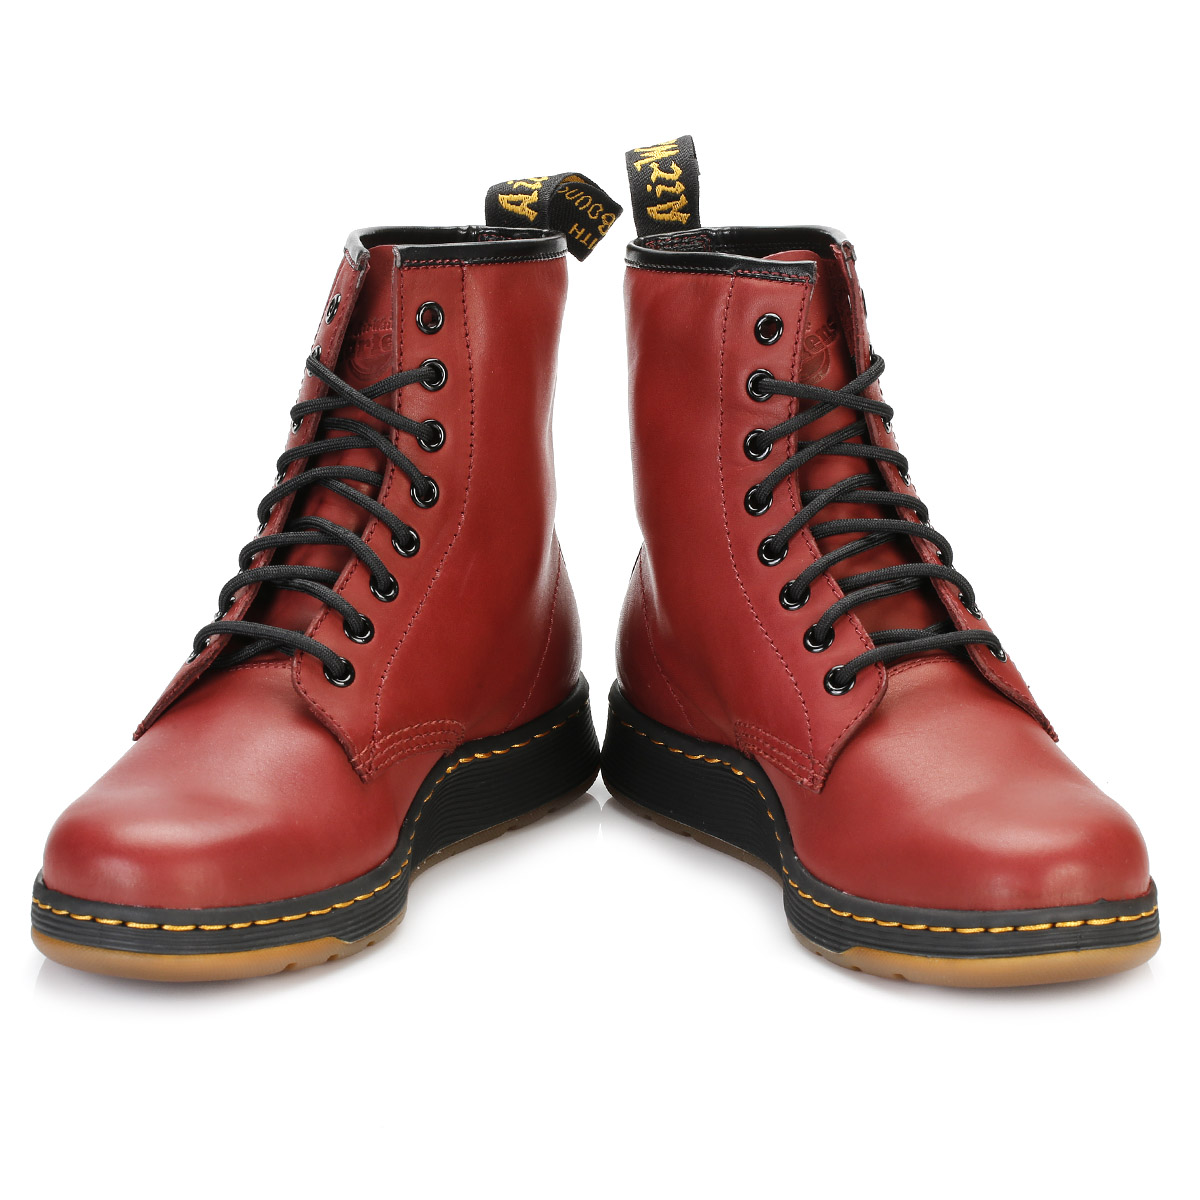 Original Repetto Red Leather Boots For Women - @WOMENSHOES